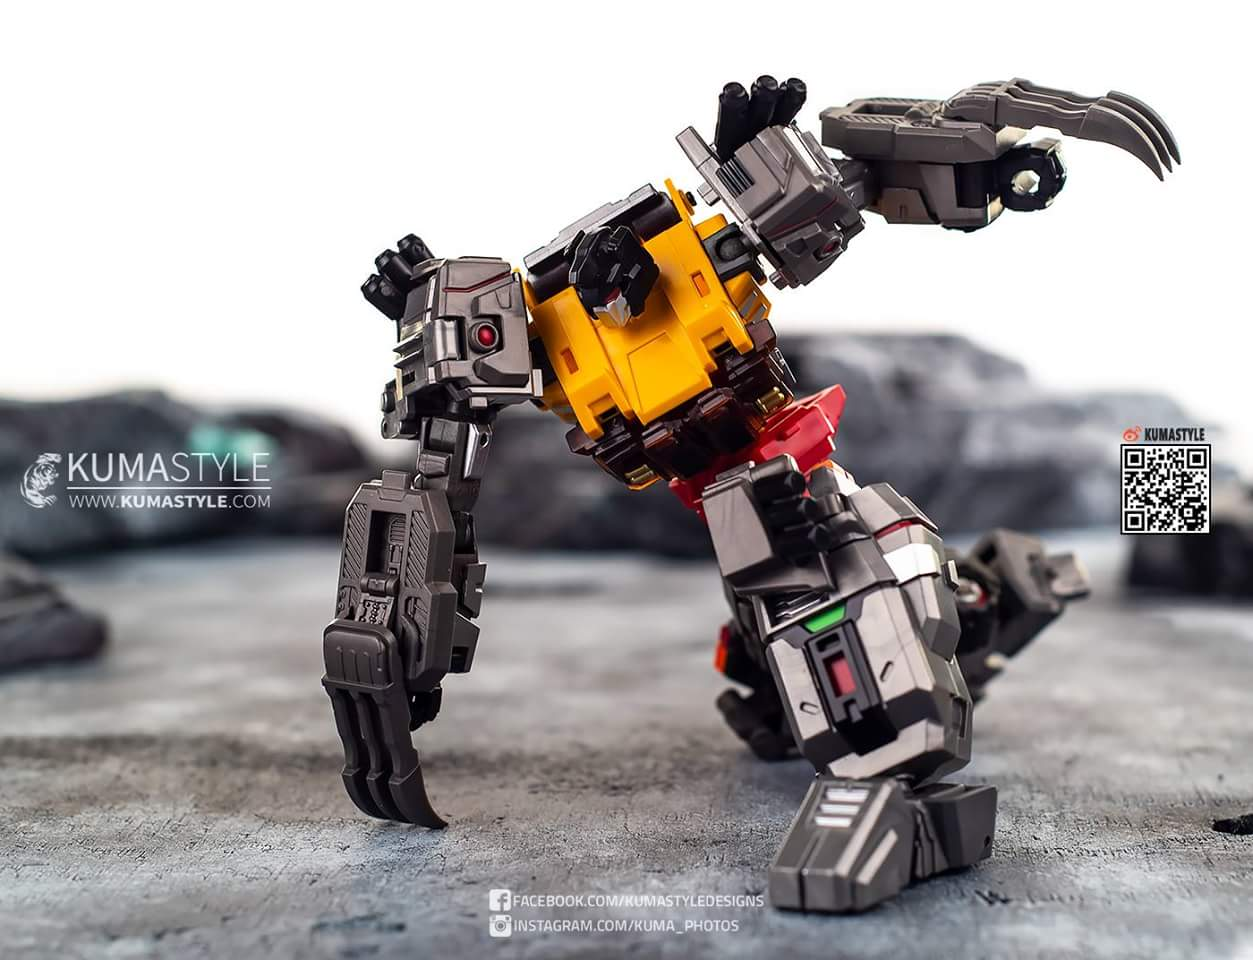 [FansProject] Produit Tiers - Jouets LER (Lost Exo Realm) - aka Dinobots - Page 3 U9nsB3DH_o